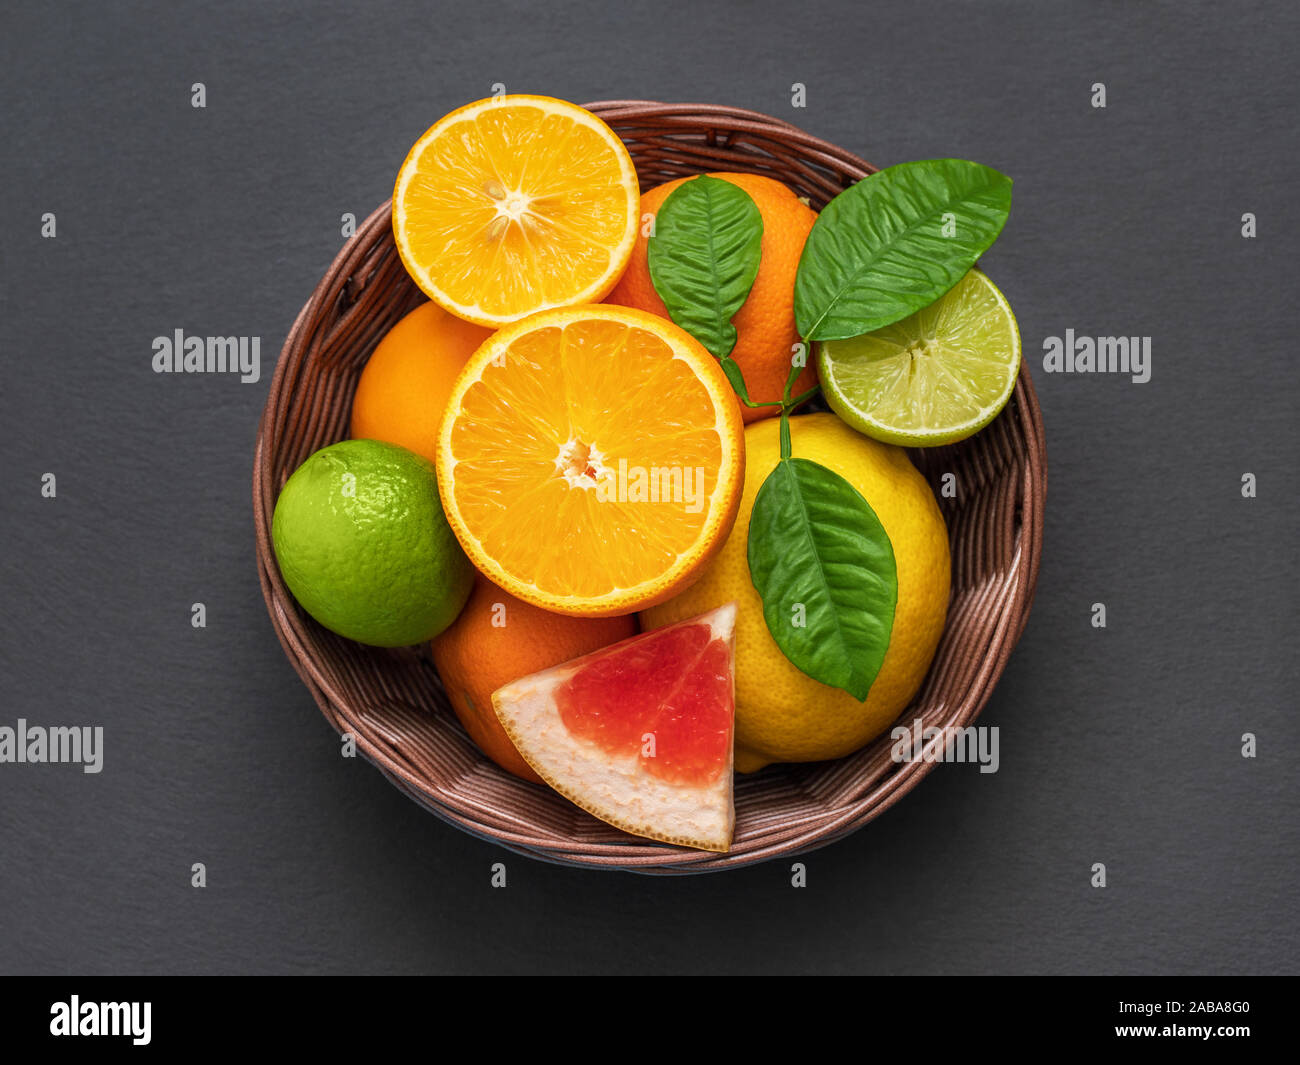 Sliced citrus in a basket on a stone table. Flat lay. Juicy ripe slices of orange, lemon, grapefruit and lime on black background. Fruit mix, top view Stock Photo